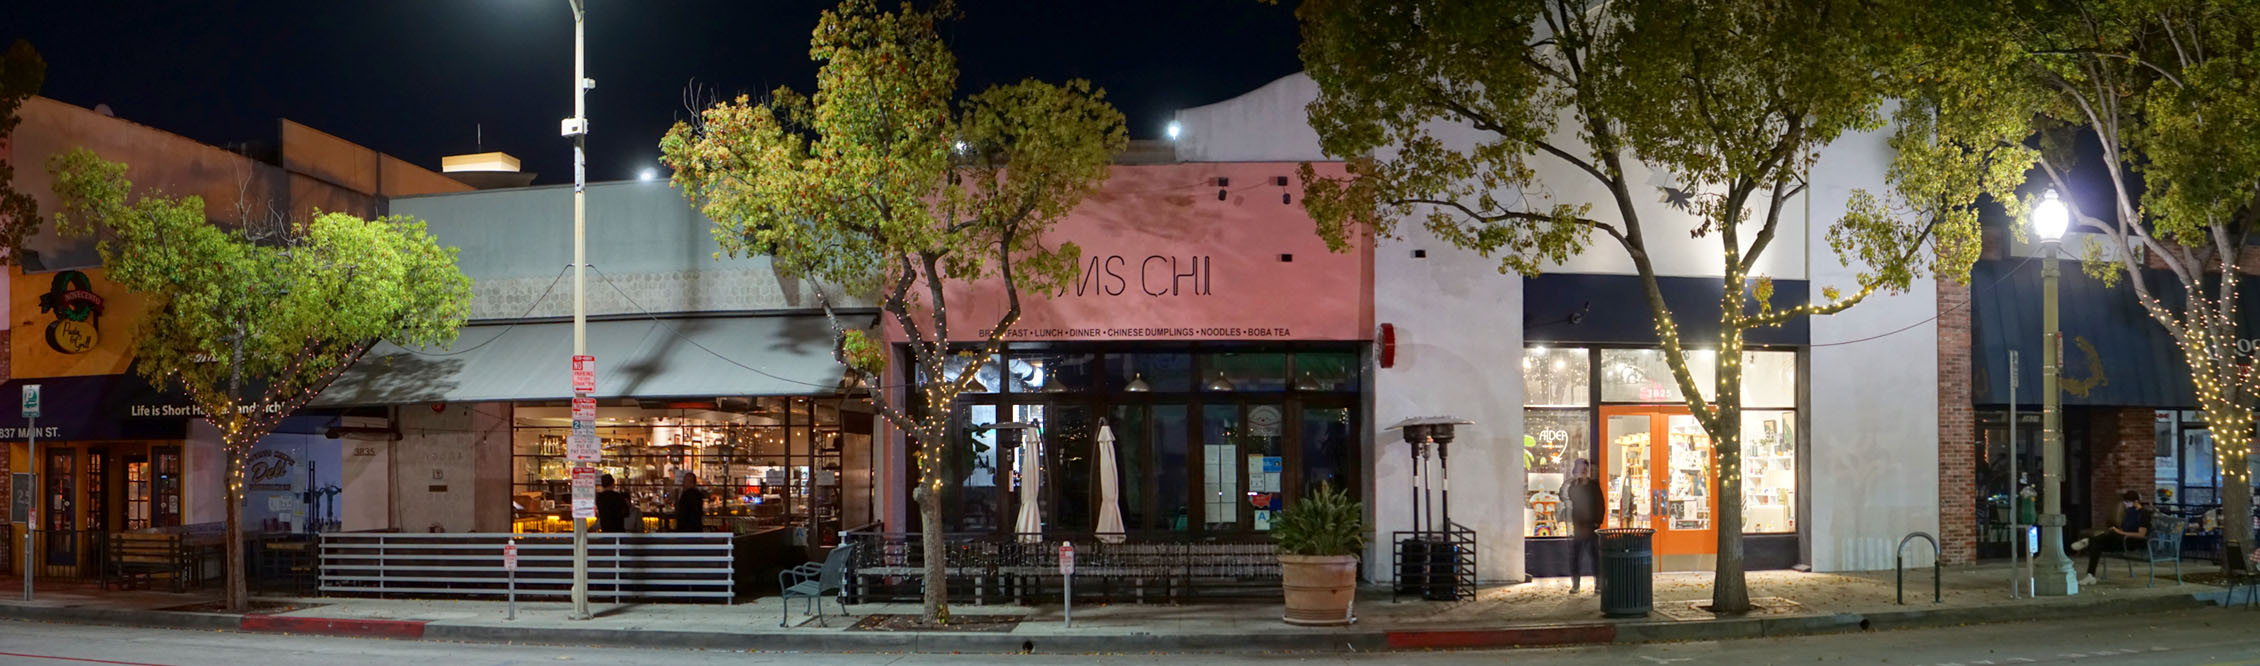 Ms Chi Cafe Exterior